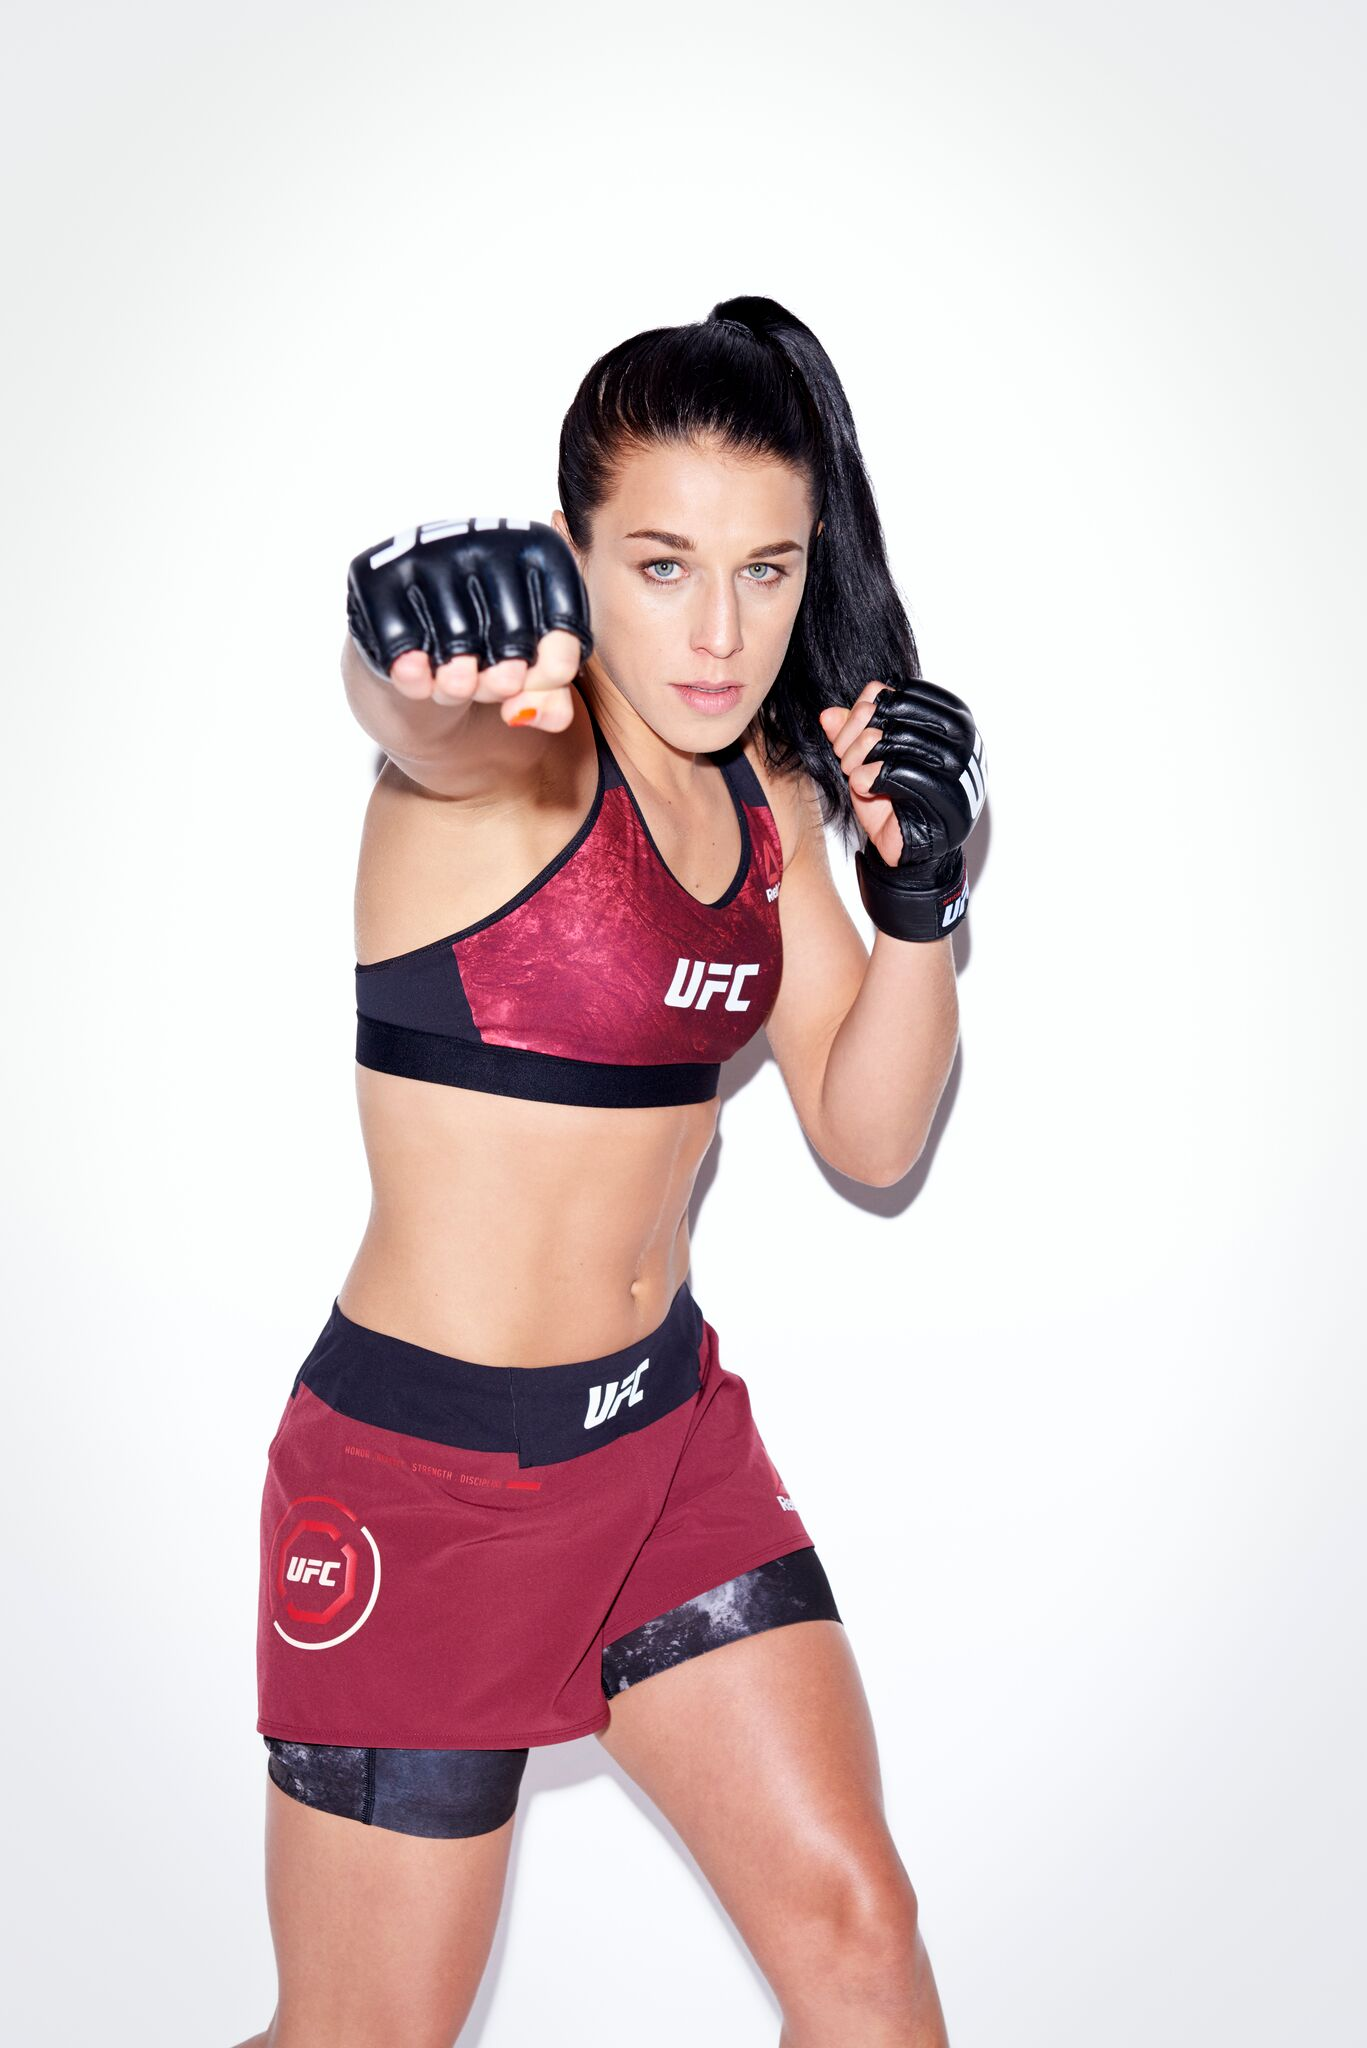 Joanna Jedrzejczyk currently holds the UFC's women's strawweight title and is the No. 8 pound-for-pound fighter in the world